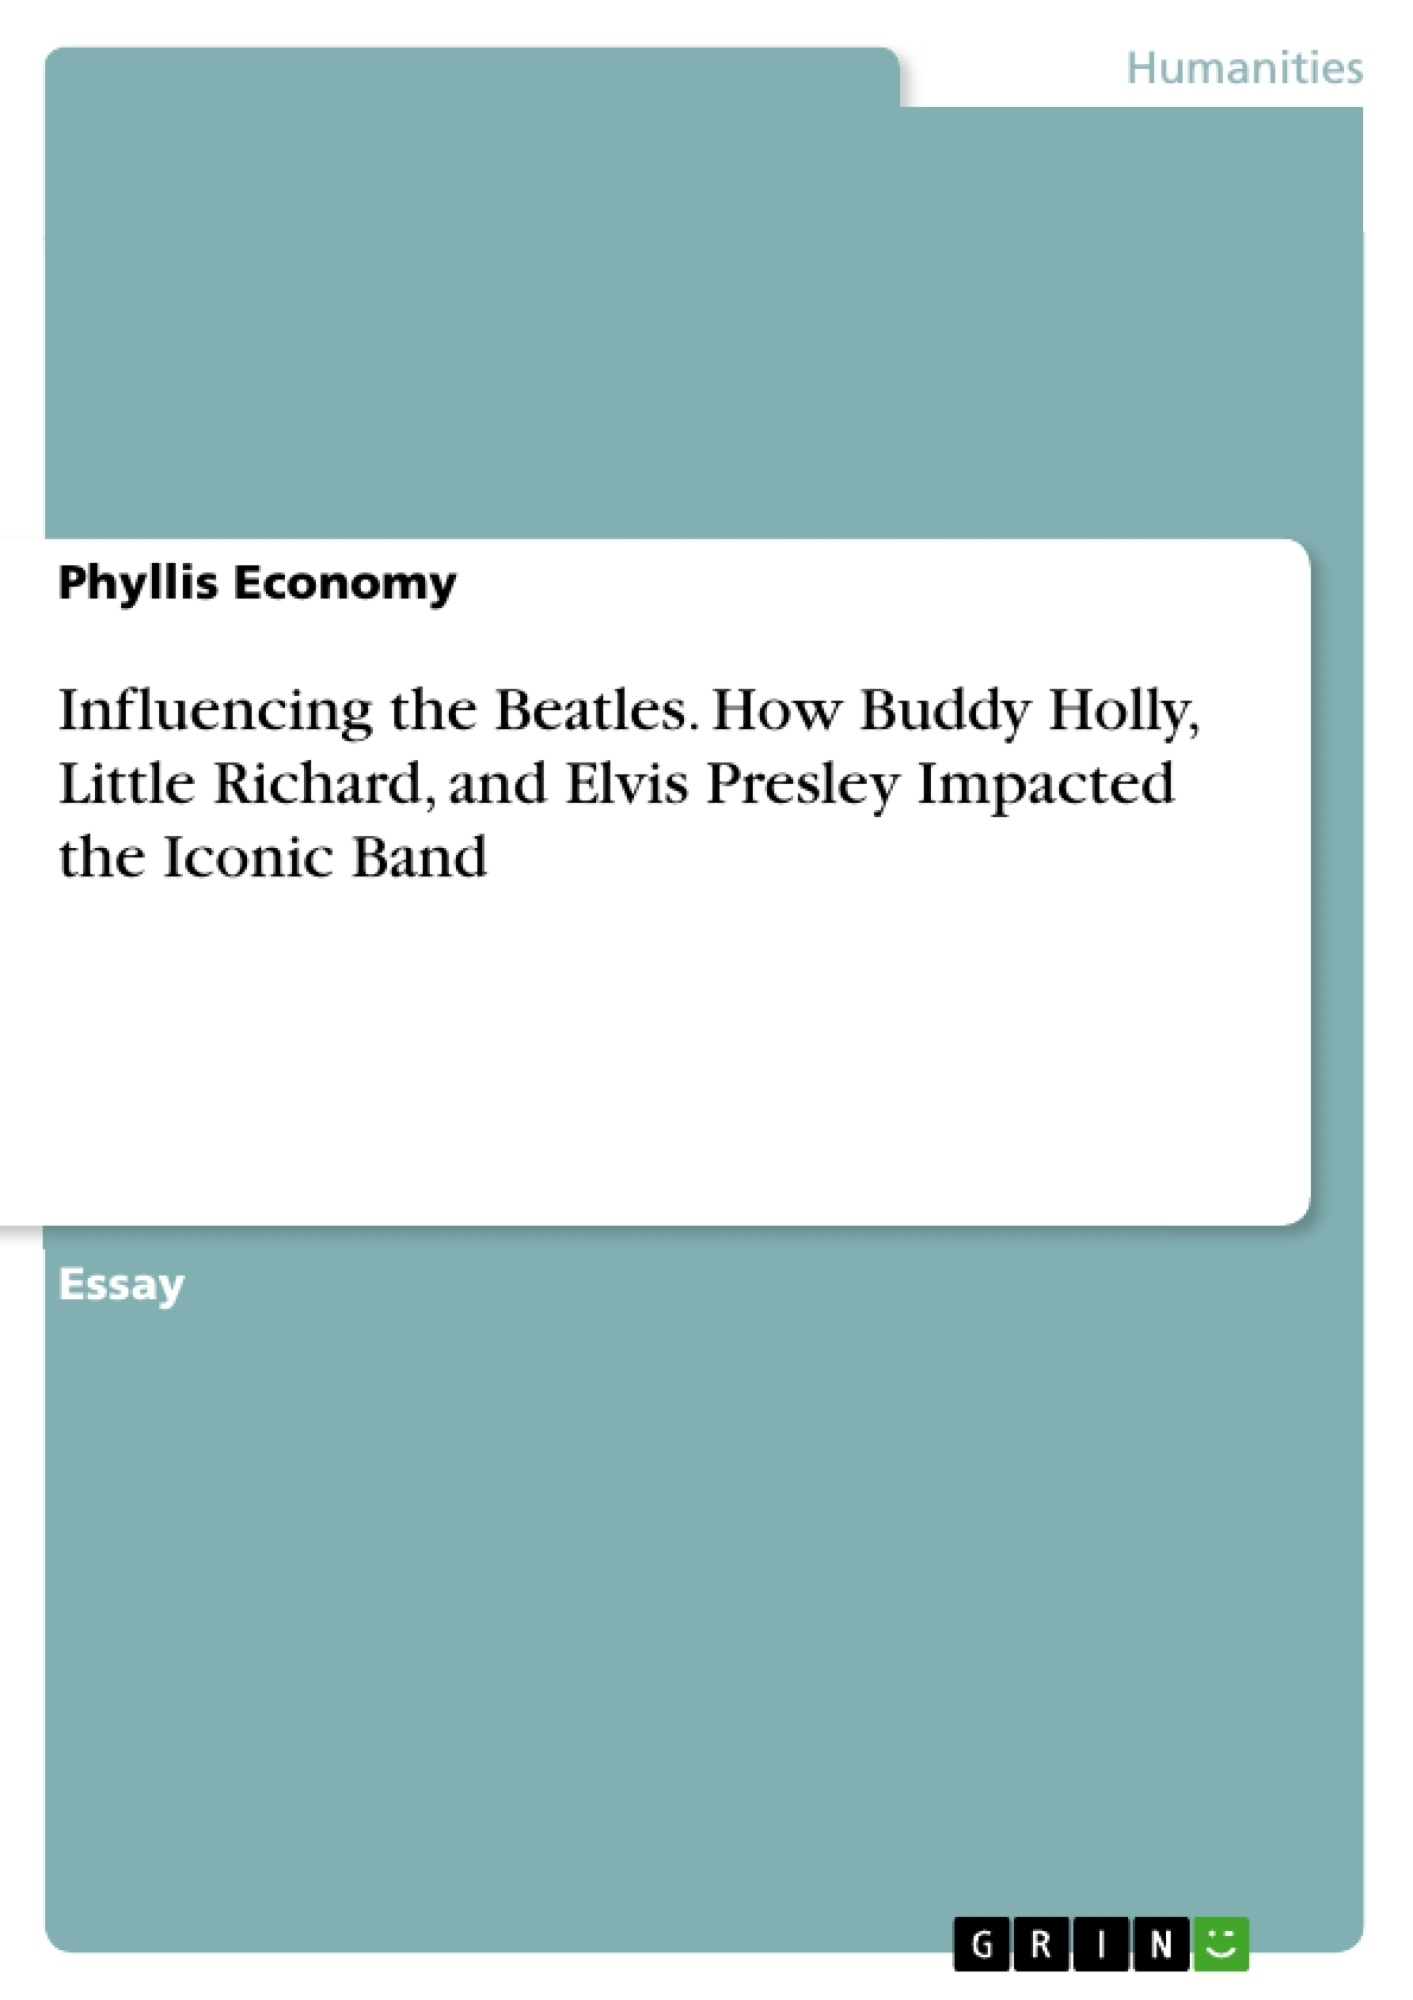 Title: Influencing the Beatles. How Buddy Holly, Little Richard, and Elvis Presley Impacted the Iconic Band